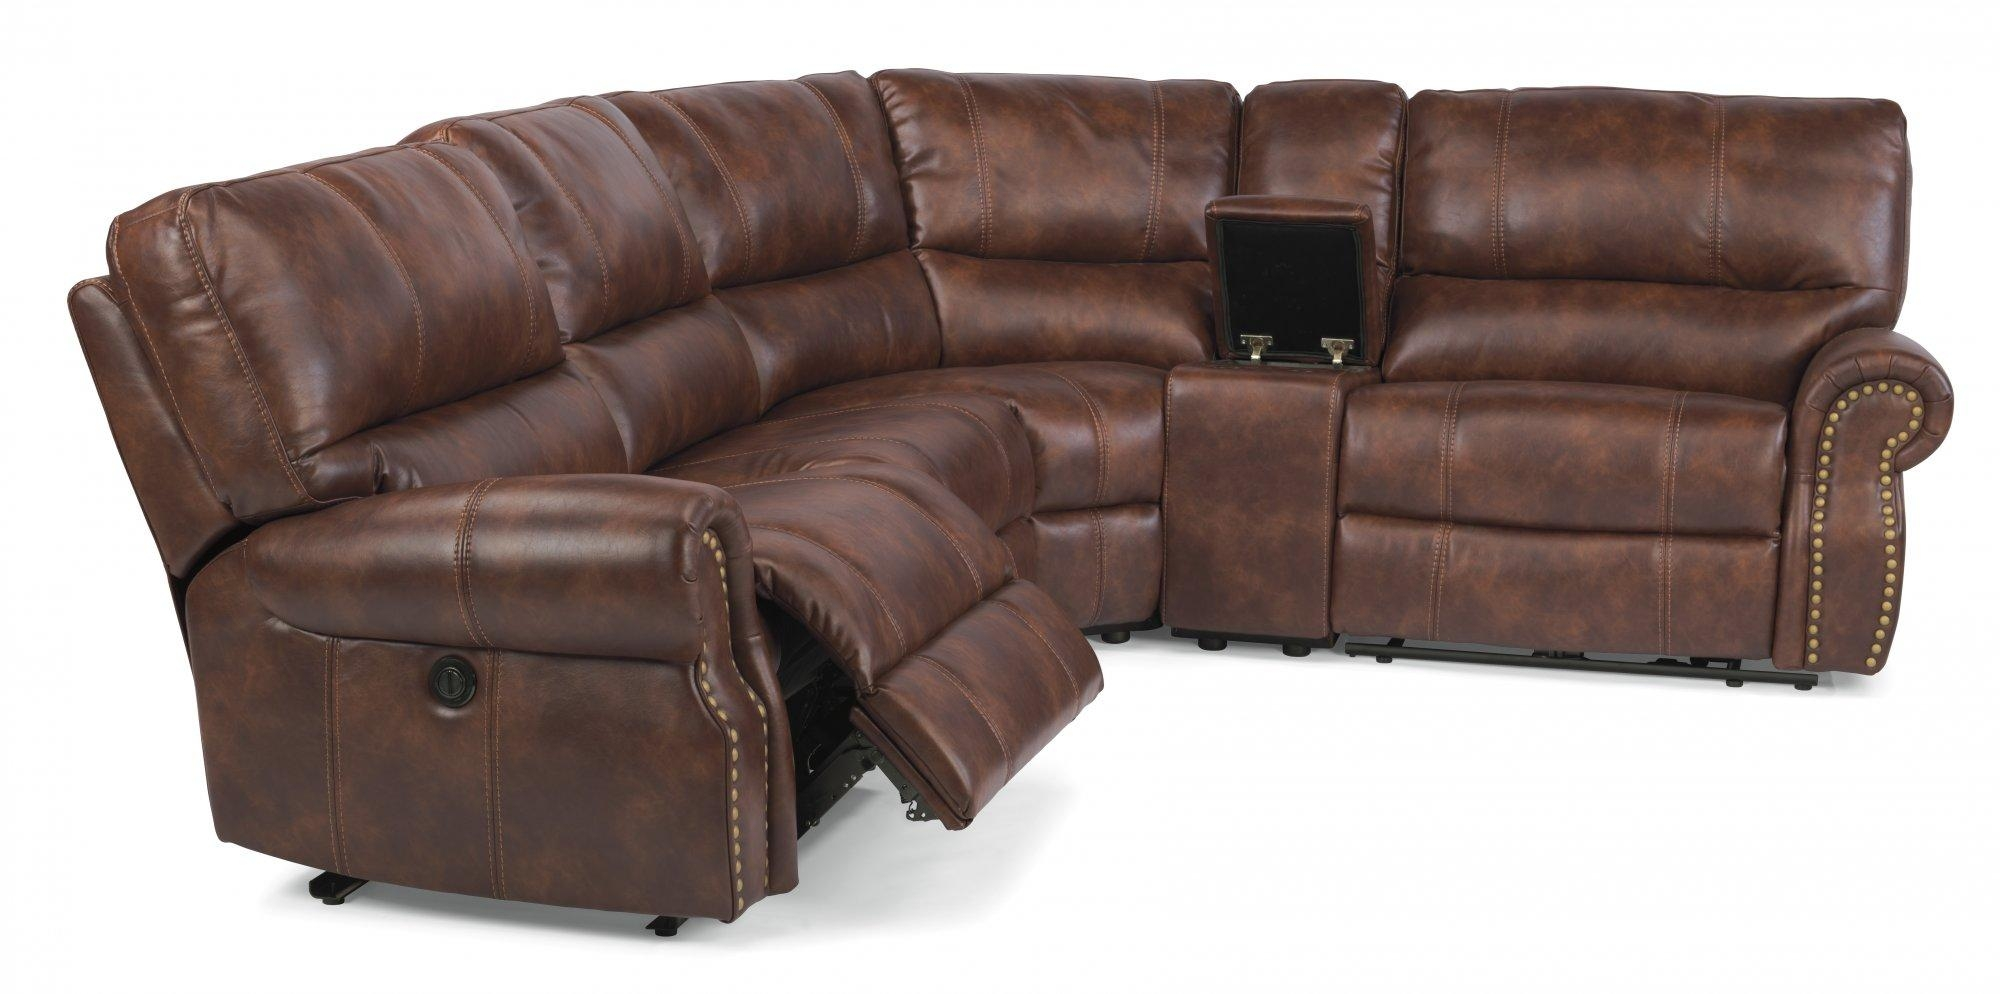 Sofas Center : Leather Huge Sectional Sofa Inspiring Hughes Fabric Within Huge Leather Sectional (Image 19 of 20)